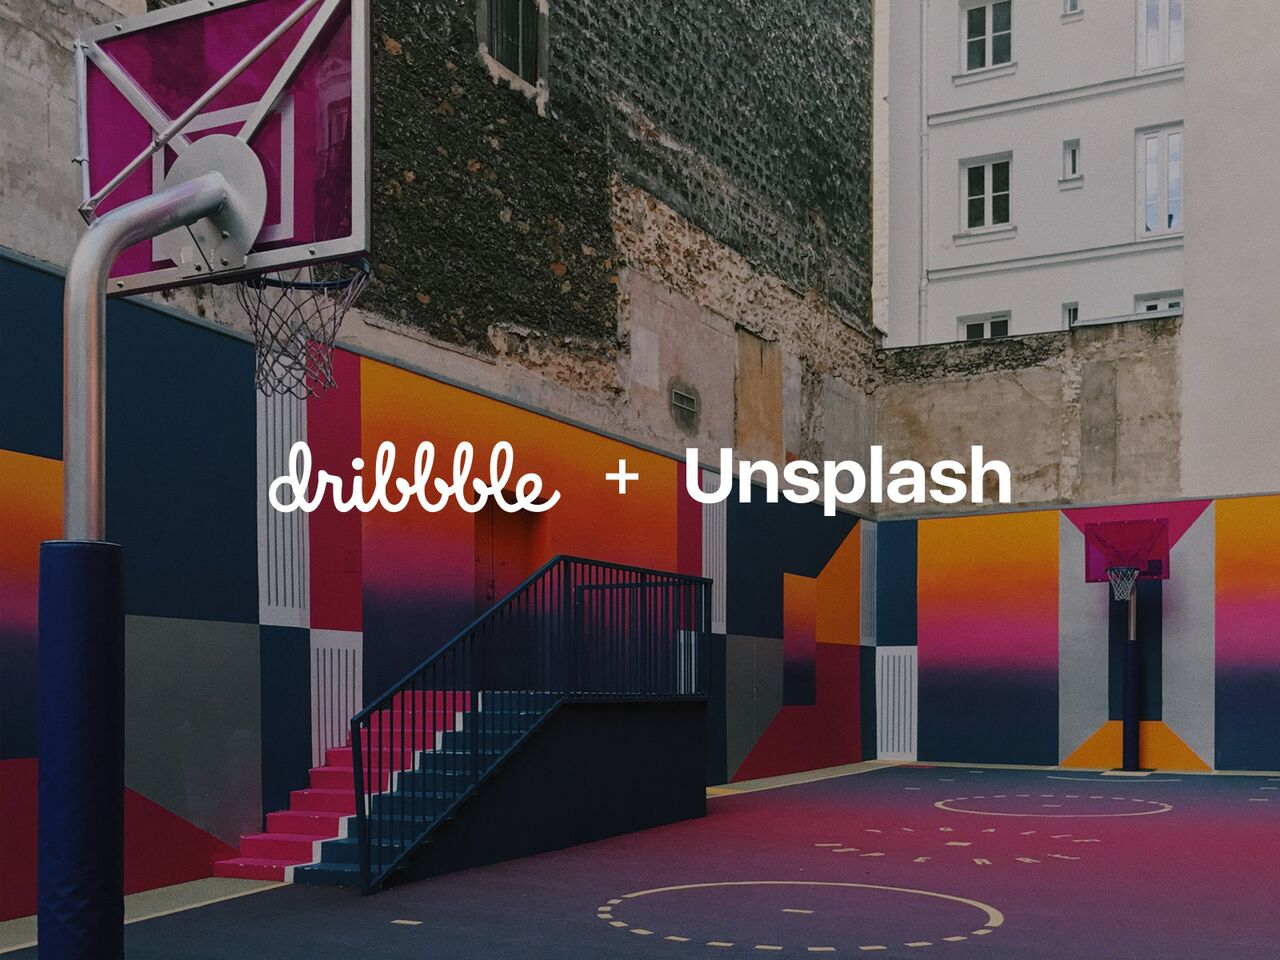 Unsplash%2bdribbble preview 1